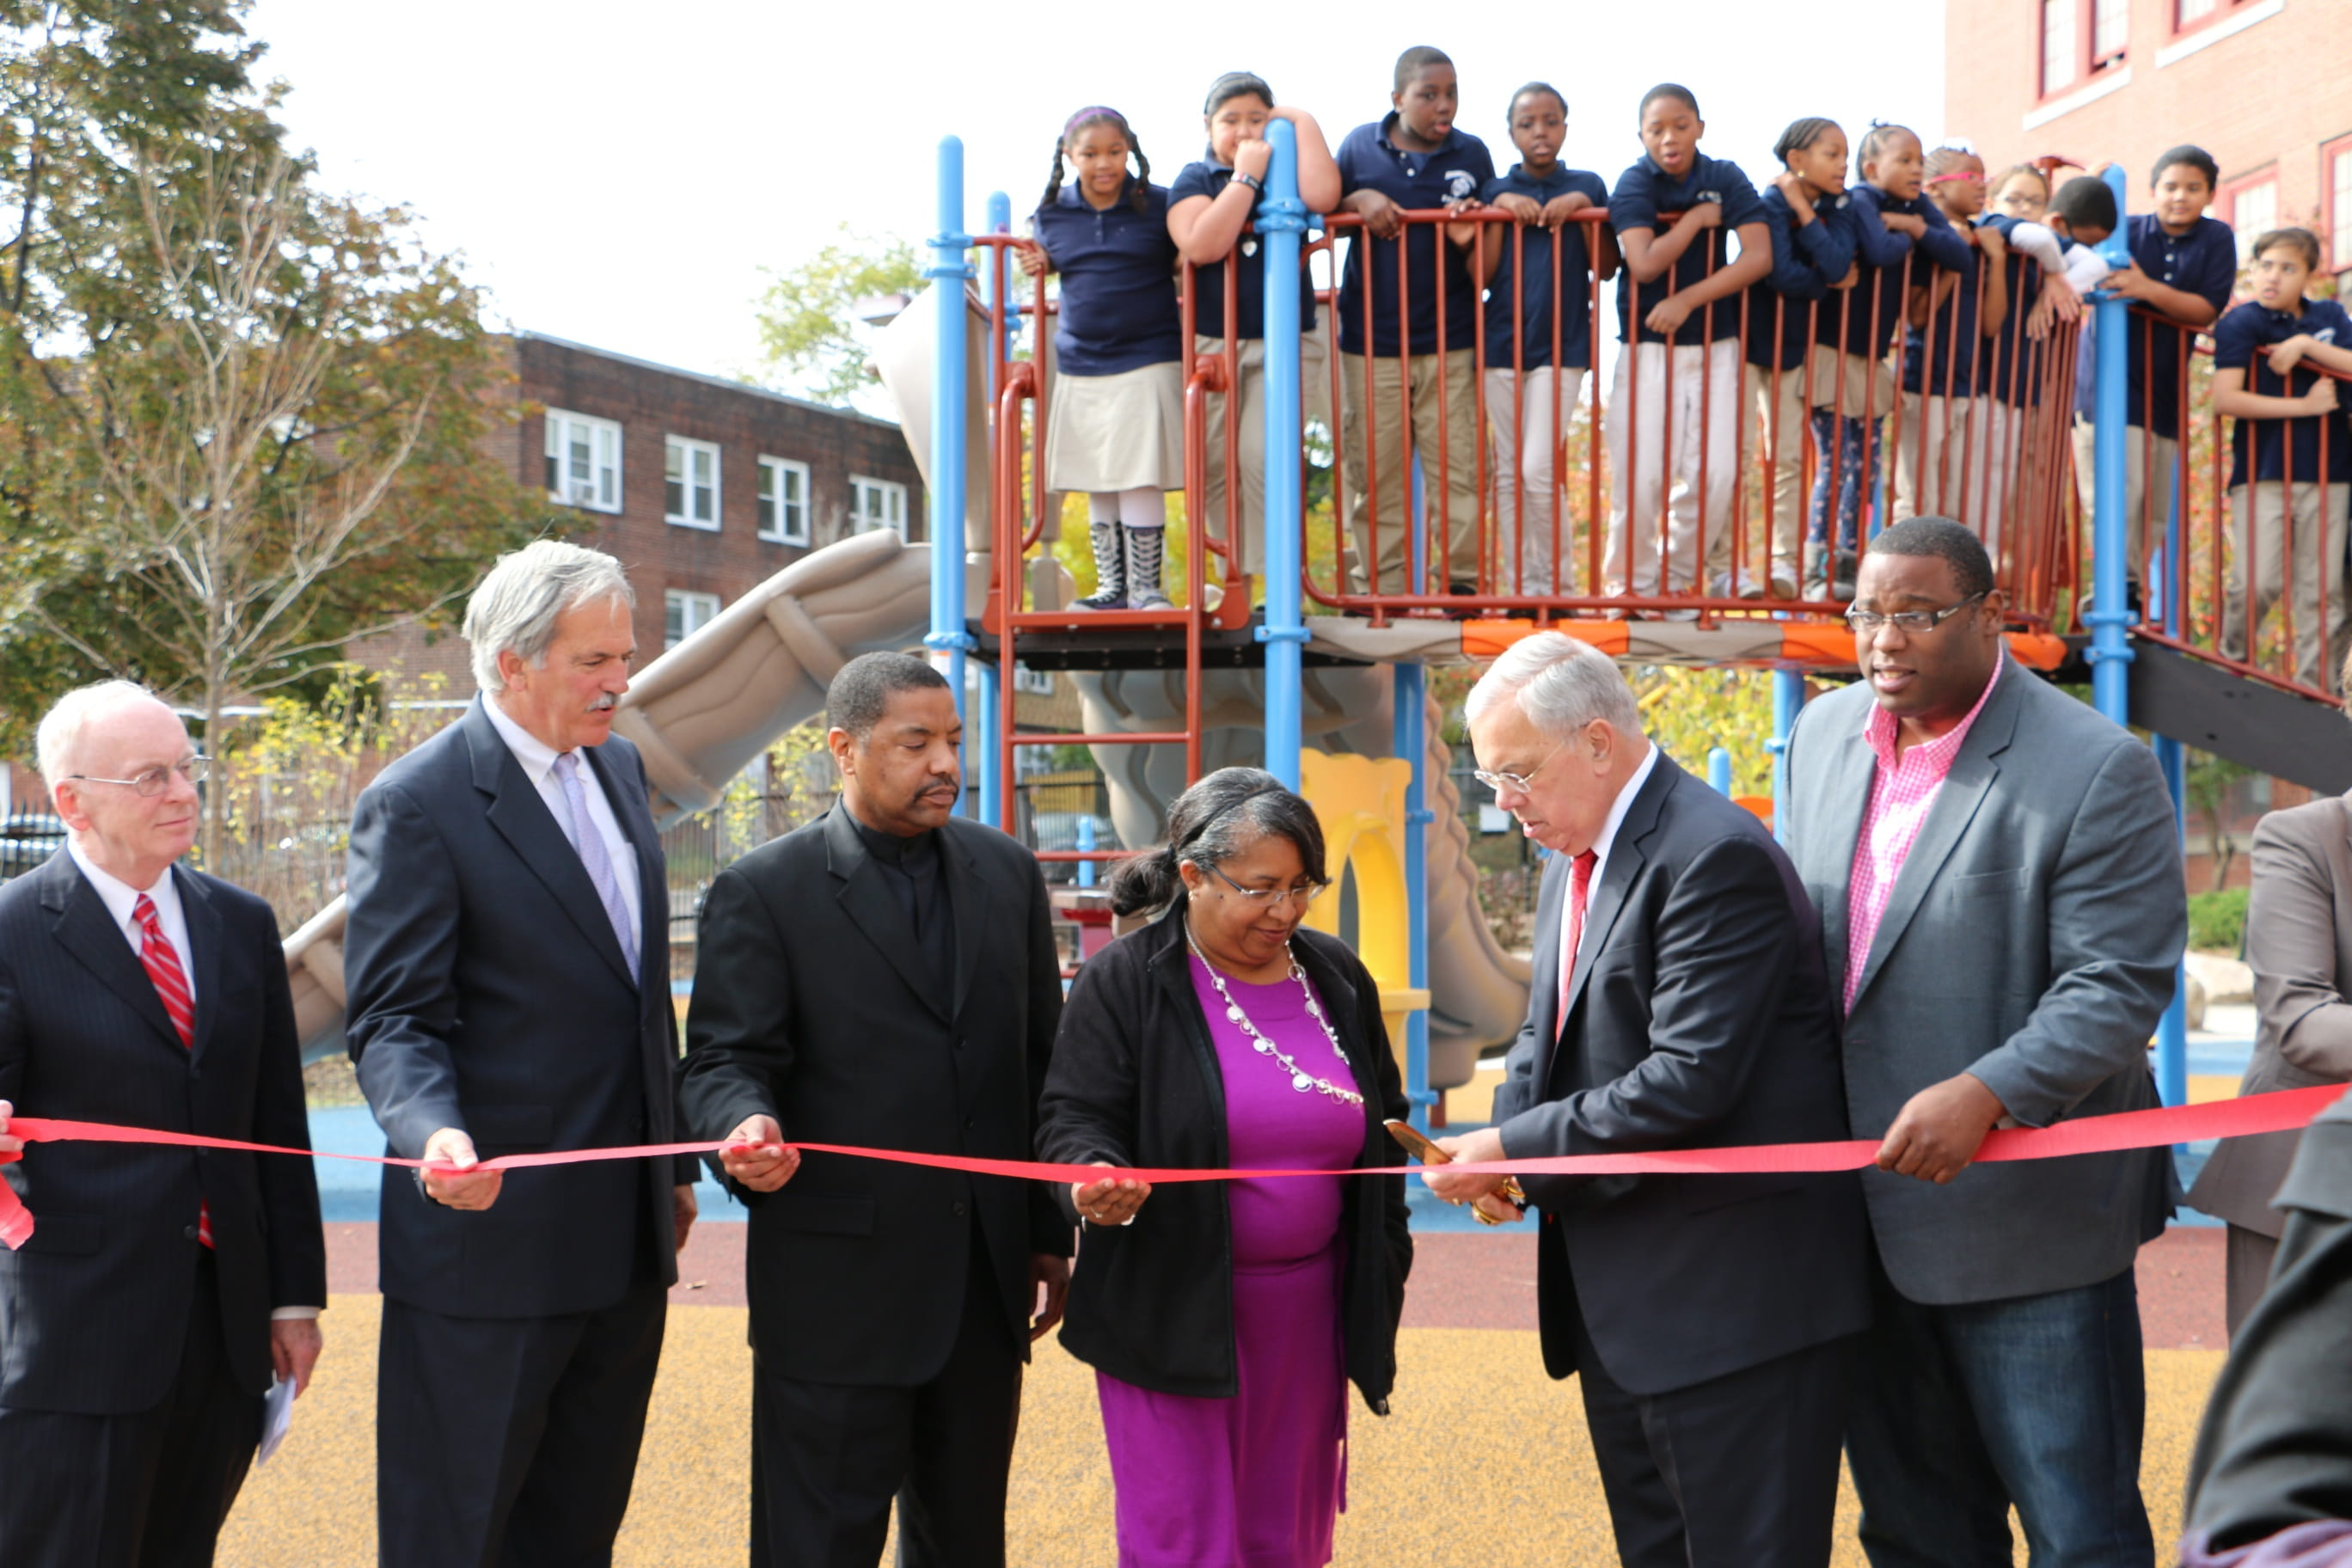 Ribbon cutting - Boston Schoolyards Initiative